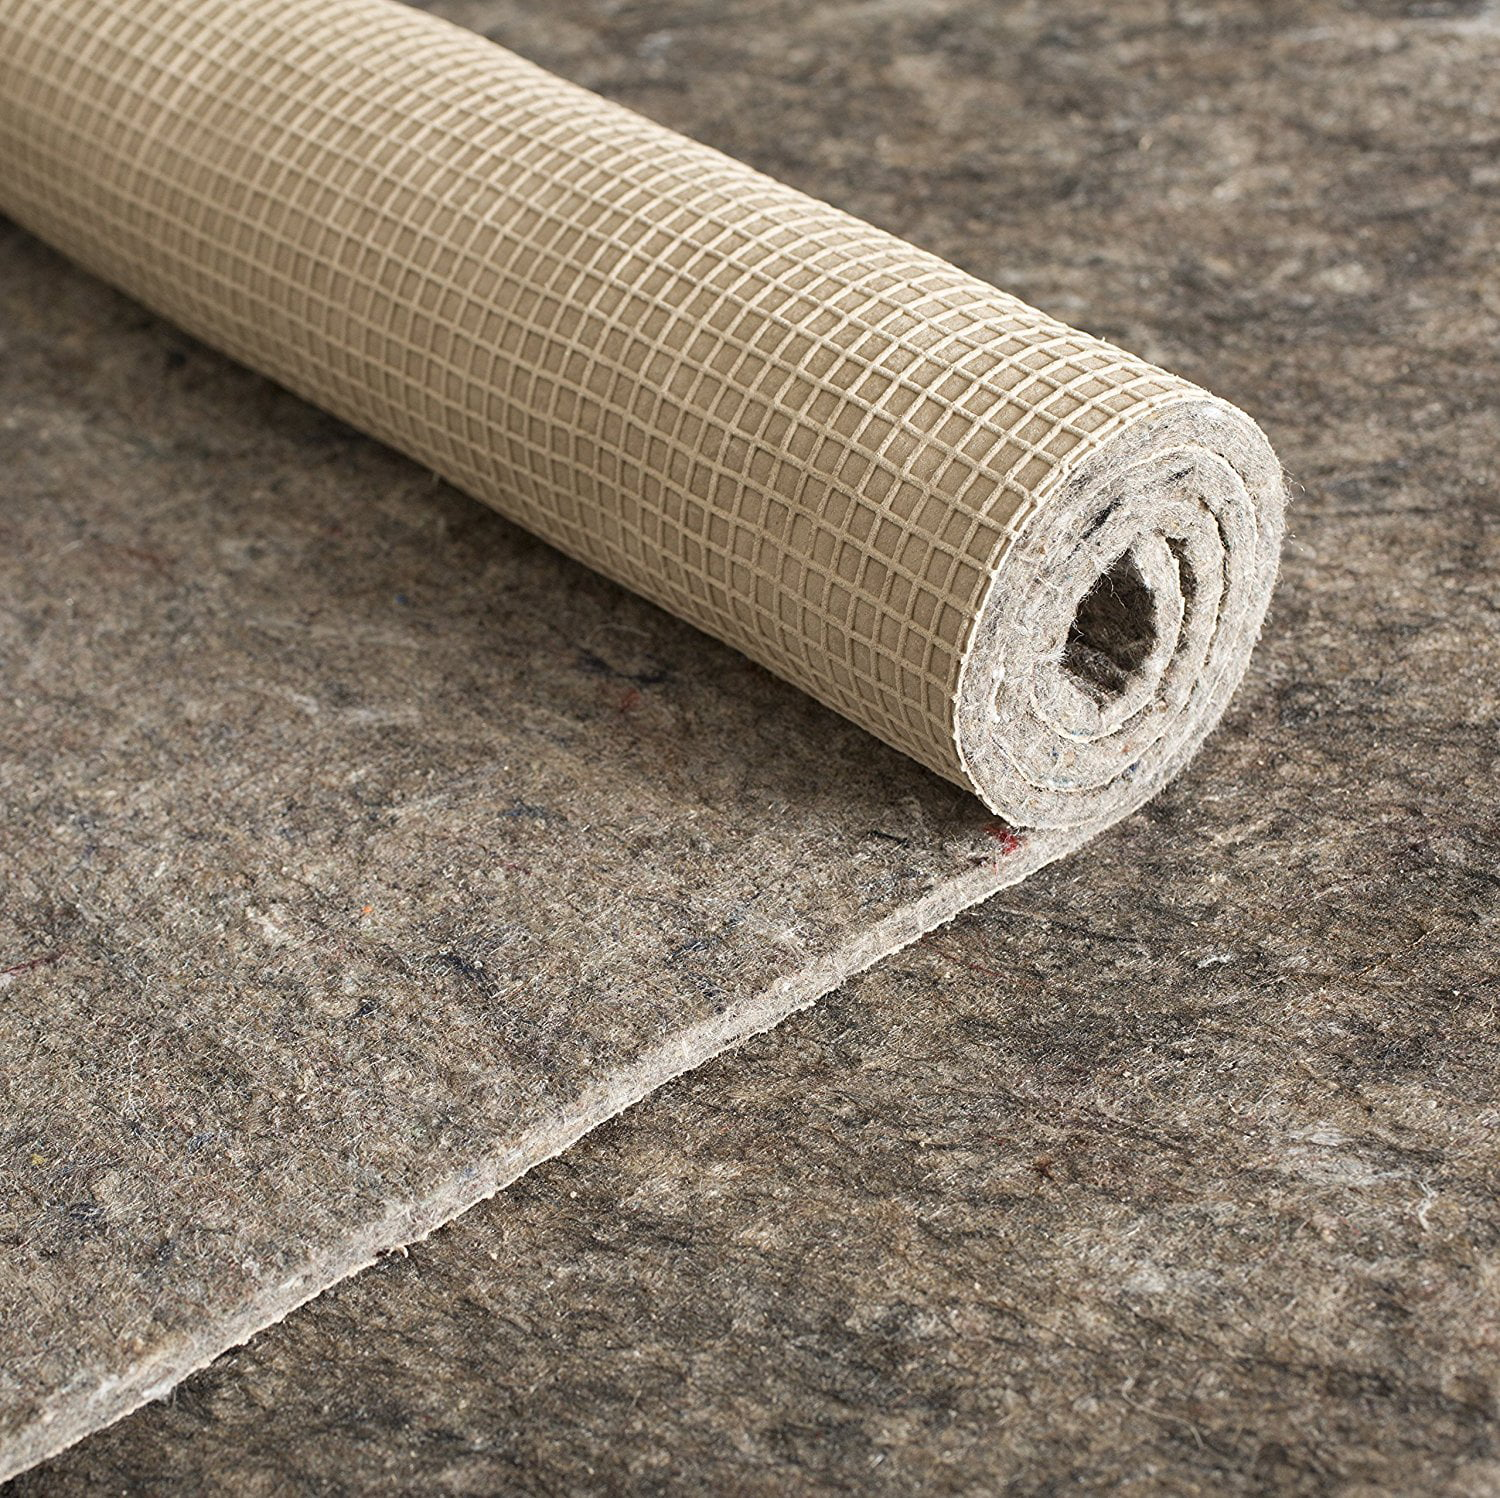 Anchor Grip 15, 1 8' Thick, Felt & Reinforced Natural Rubber Rug Pad, 2' x 4' by Rug Pad Central